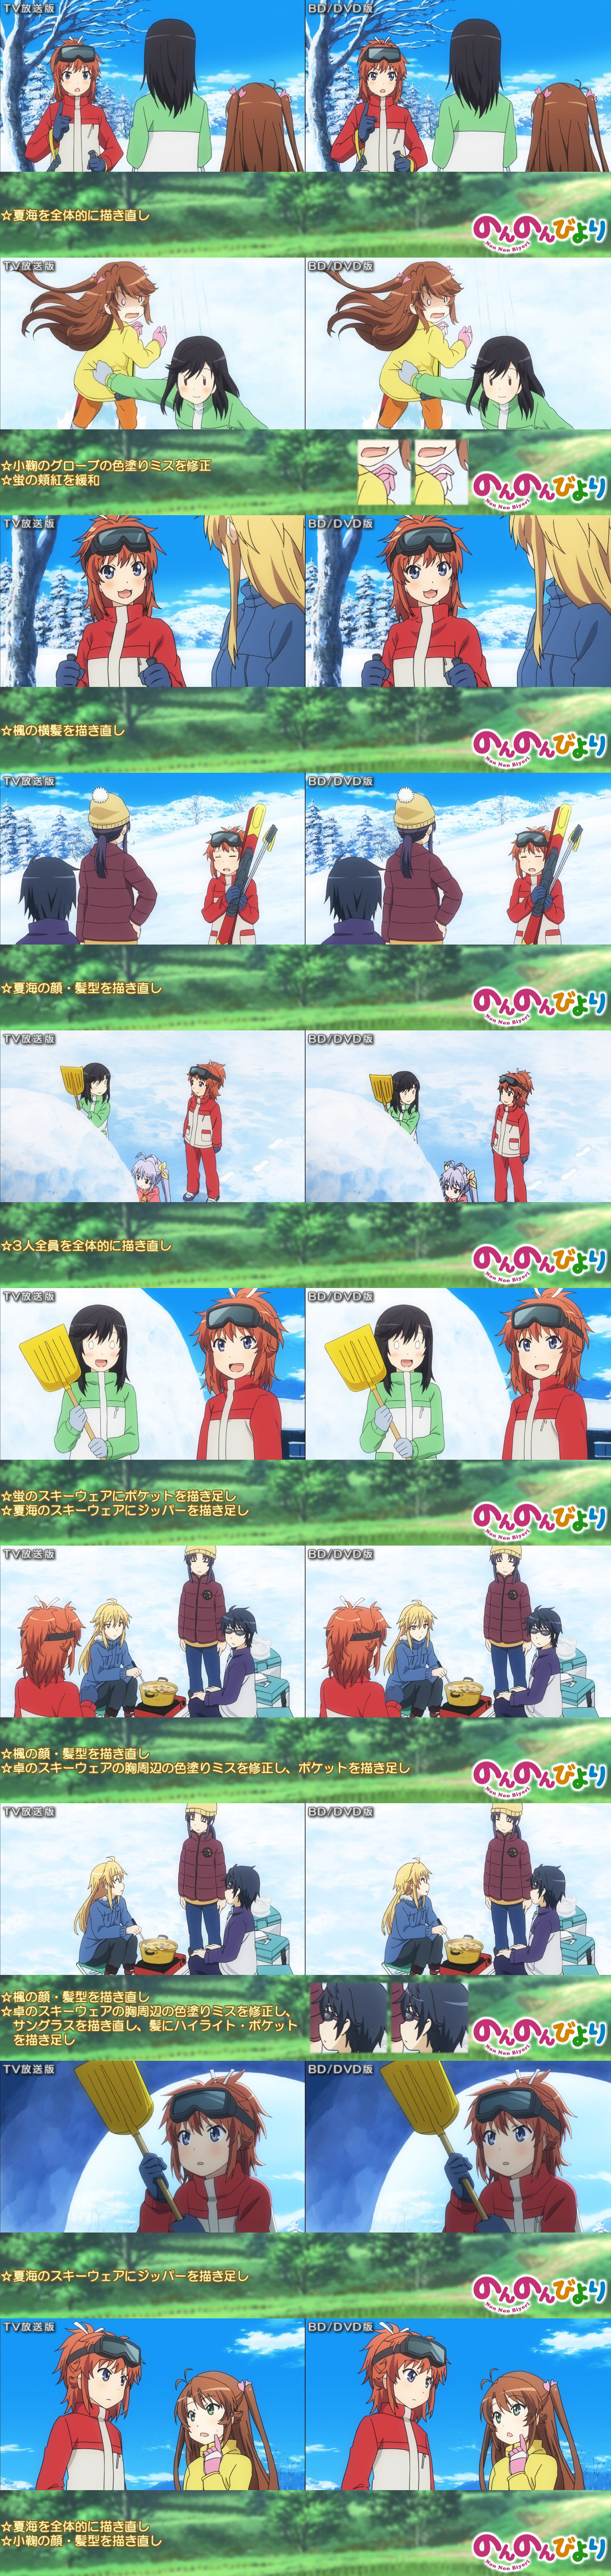 Non-Non-Biyori-TV-and-Blu-ray-Comparisons-Episode-11-5